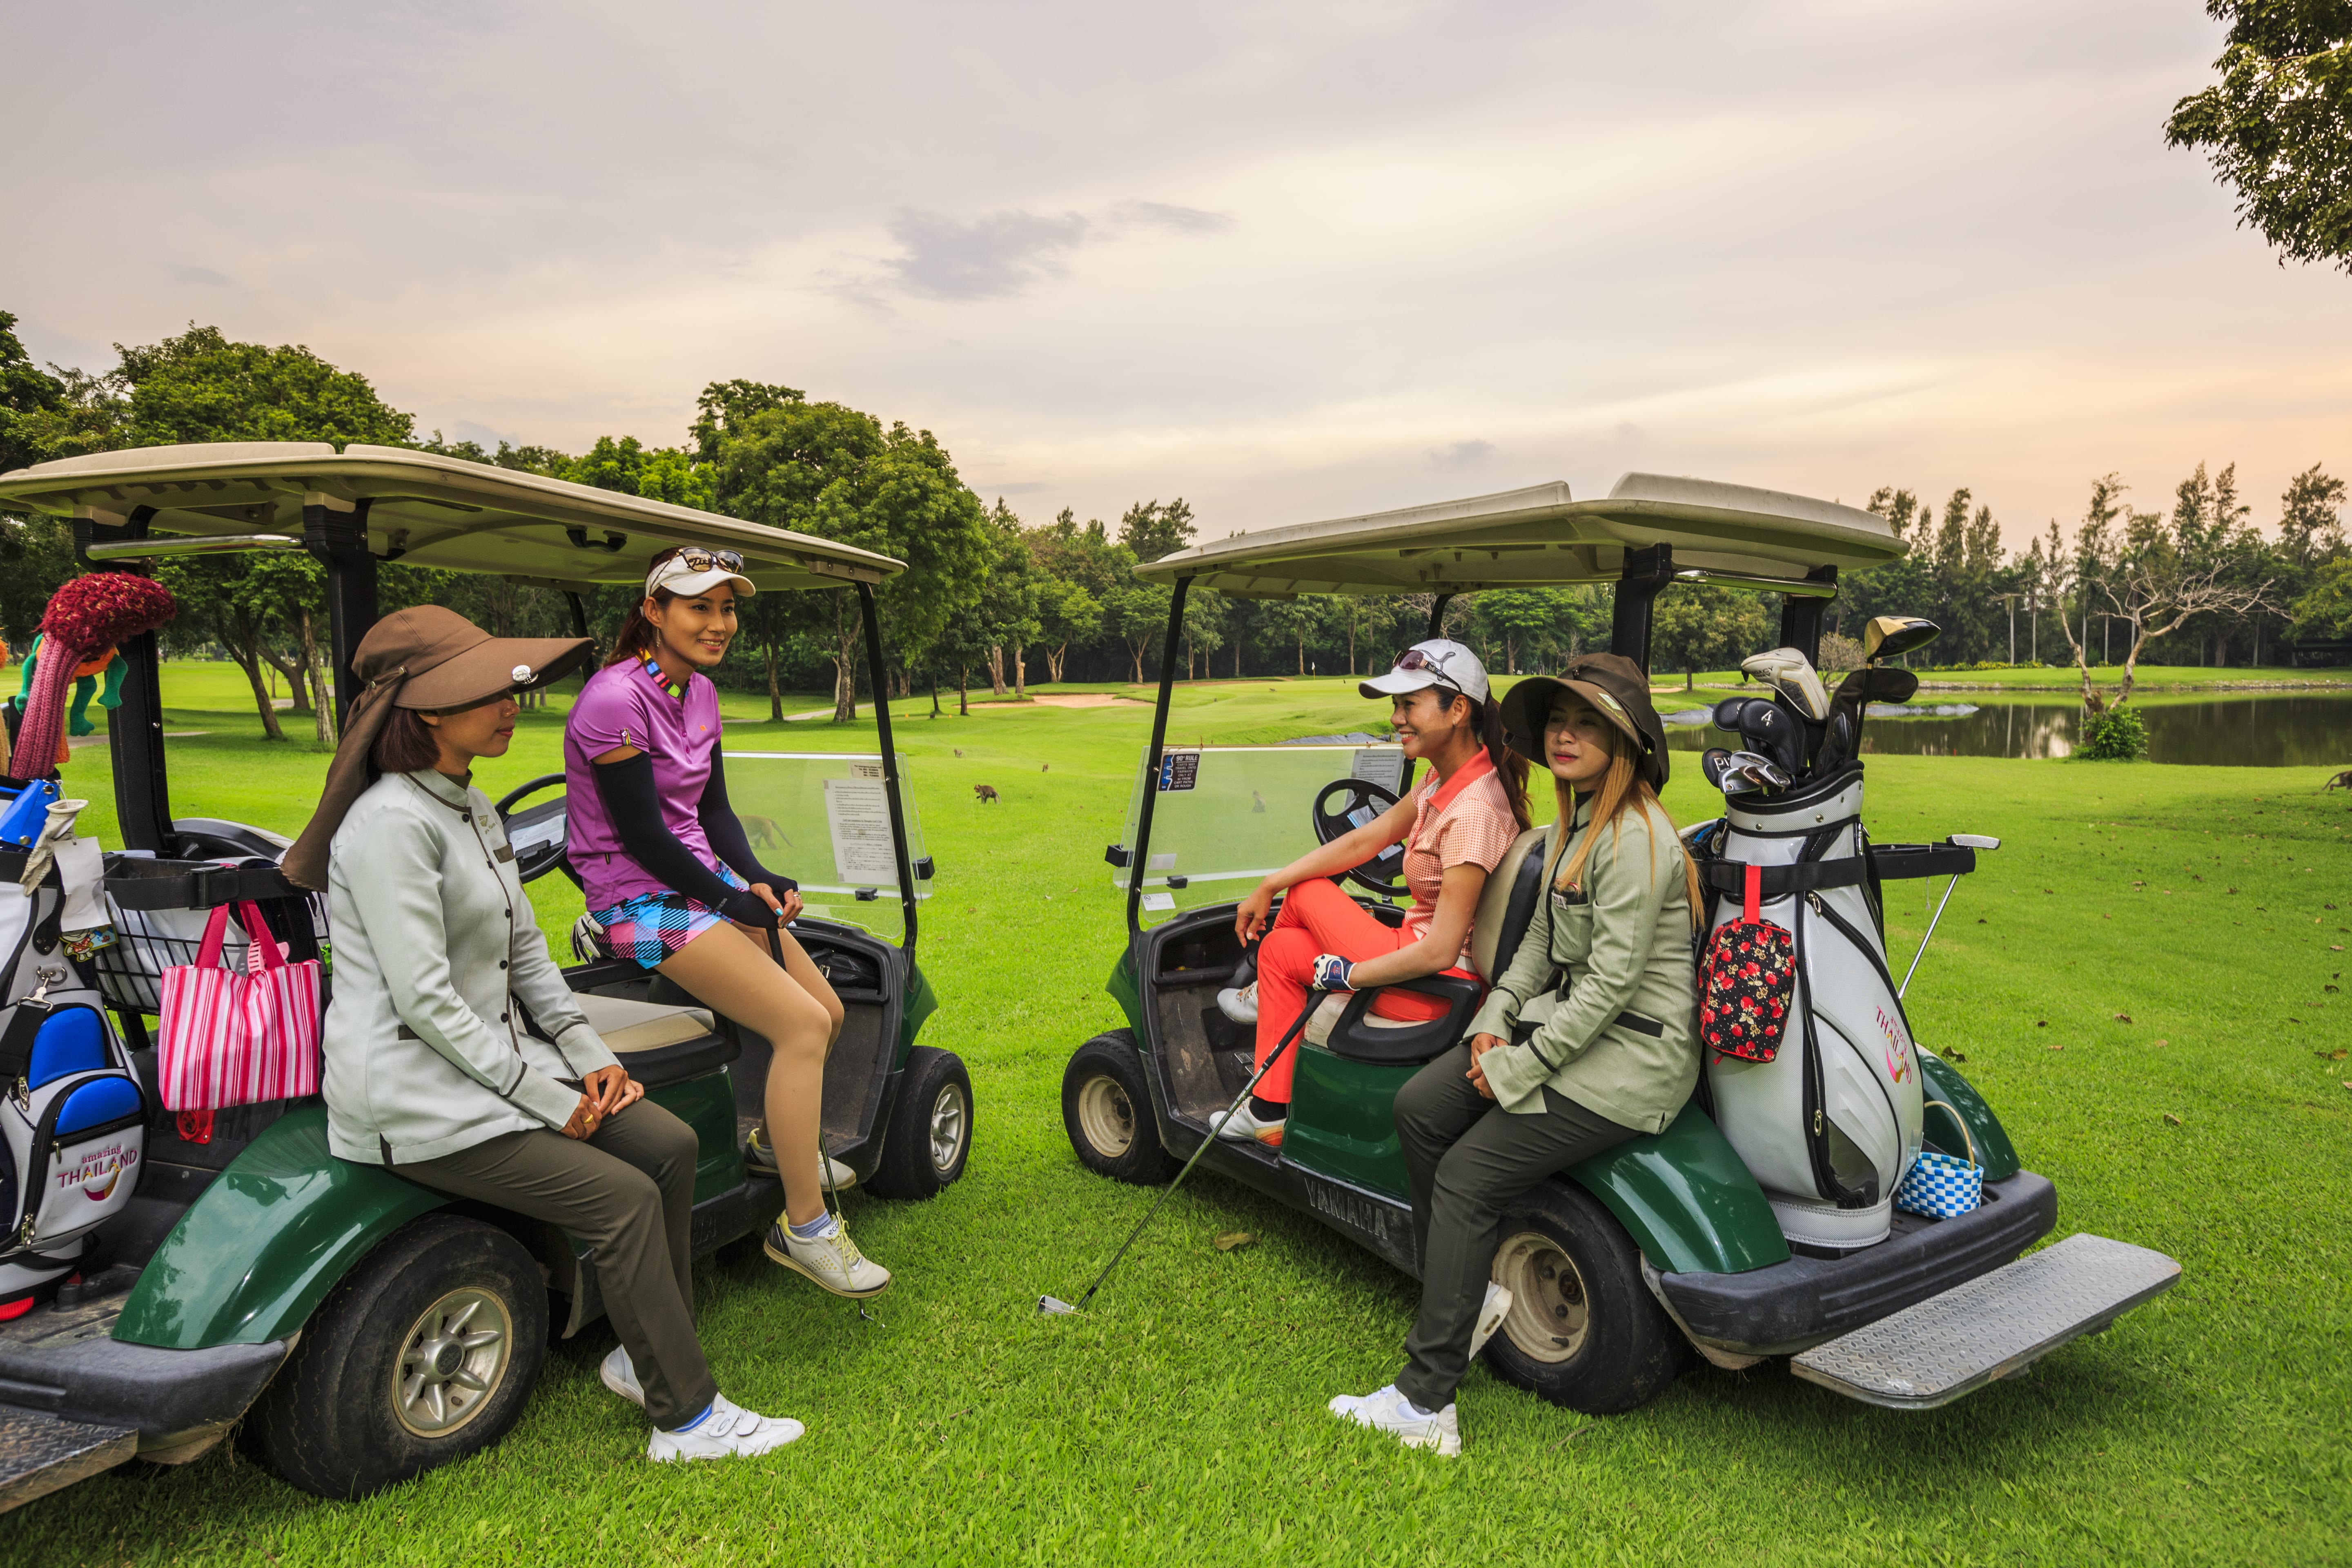 Chon Buri Bangpra International Golf Club